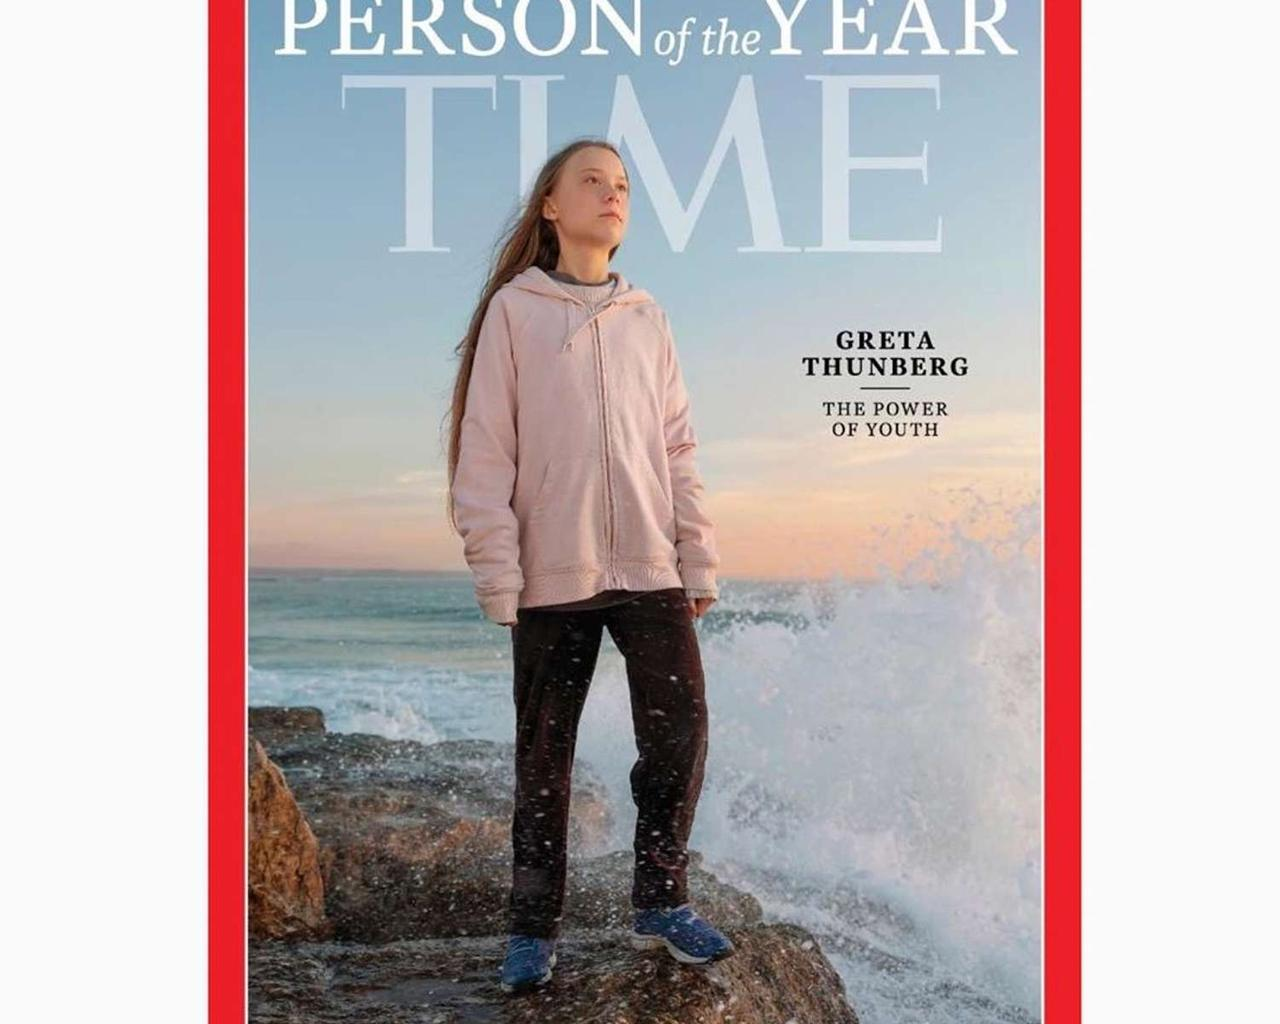 Donald Trump Bullies Greta Thunberg on Twitter after She Became TIME's Person of the Year